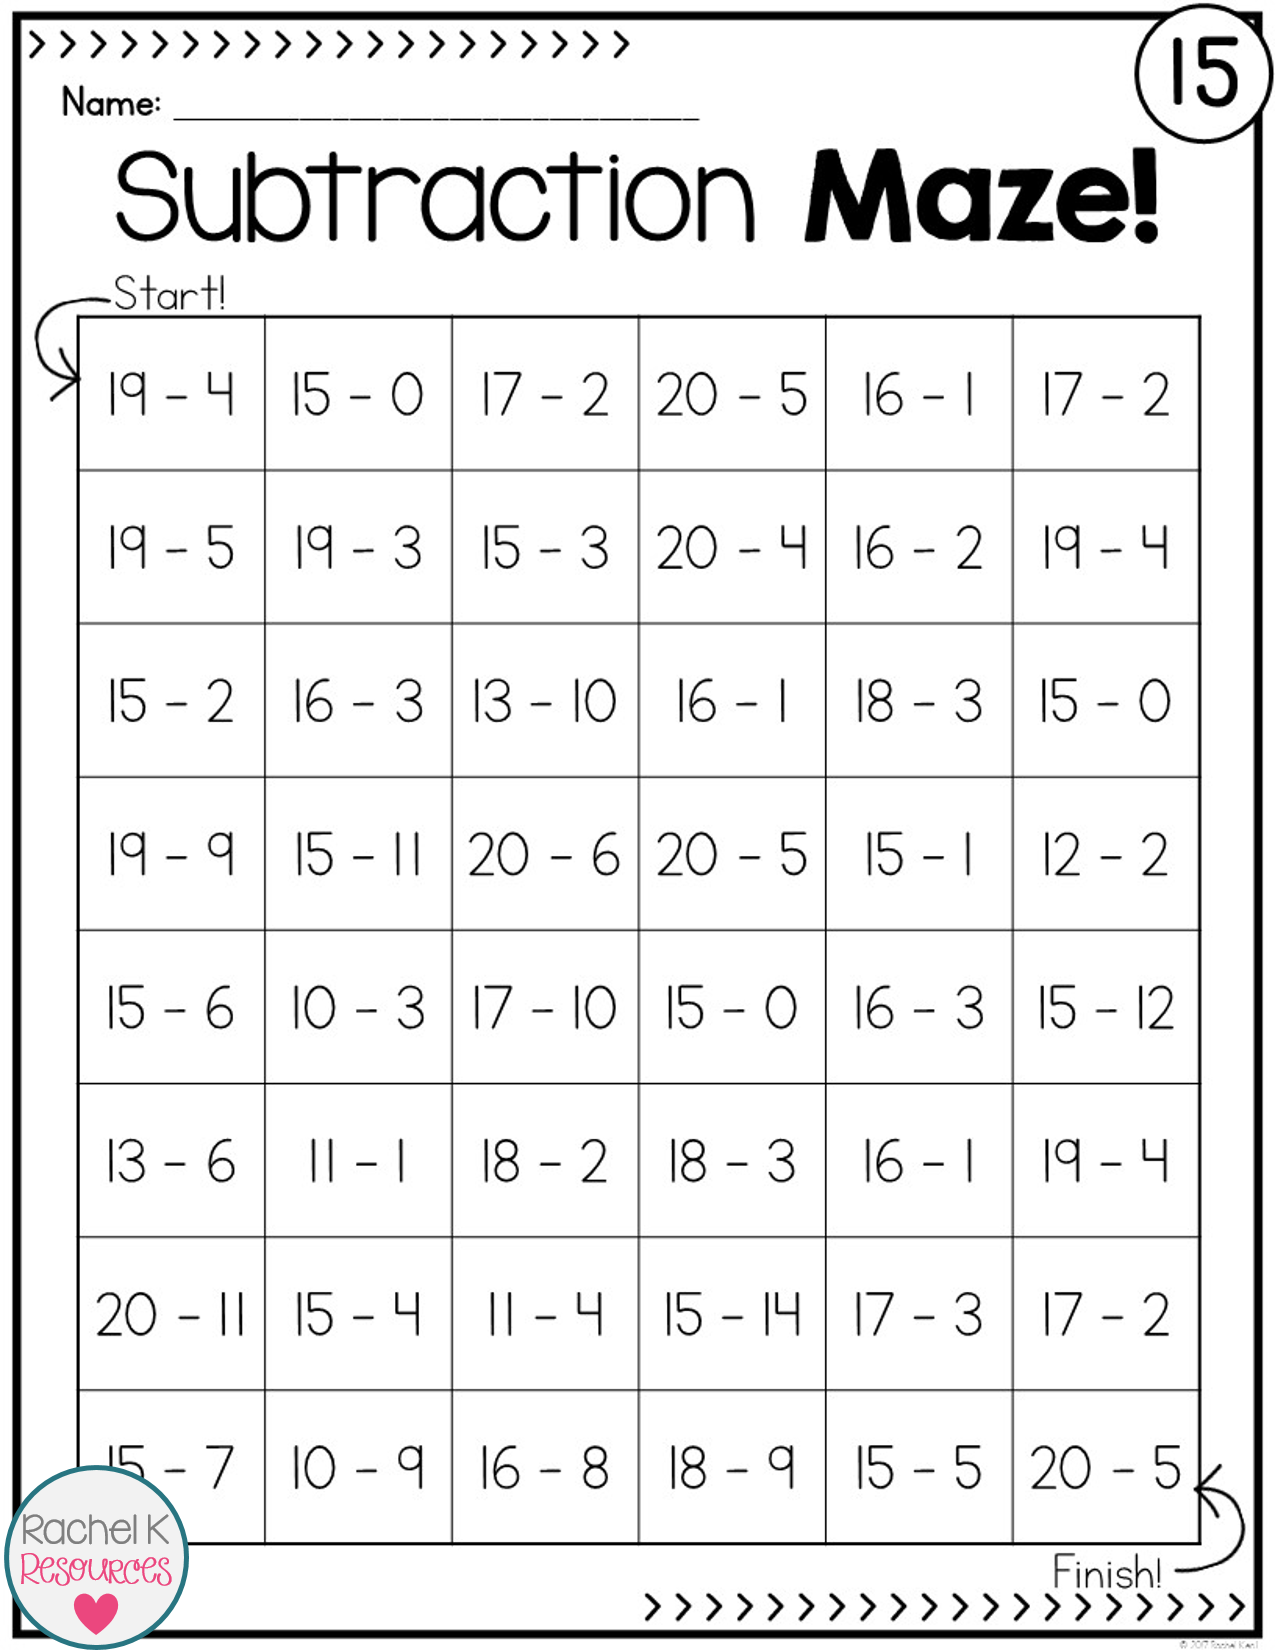 Subtraction Practice Mazes